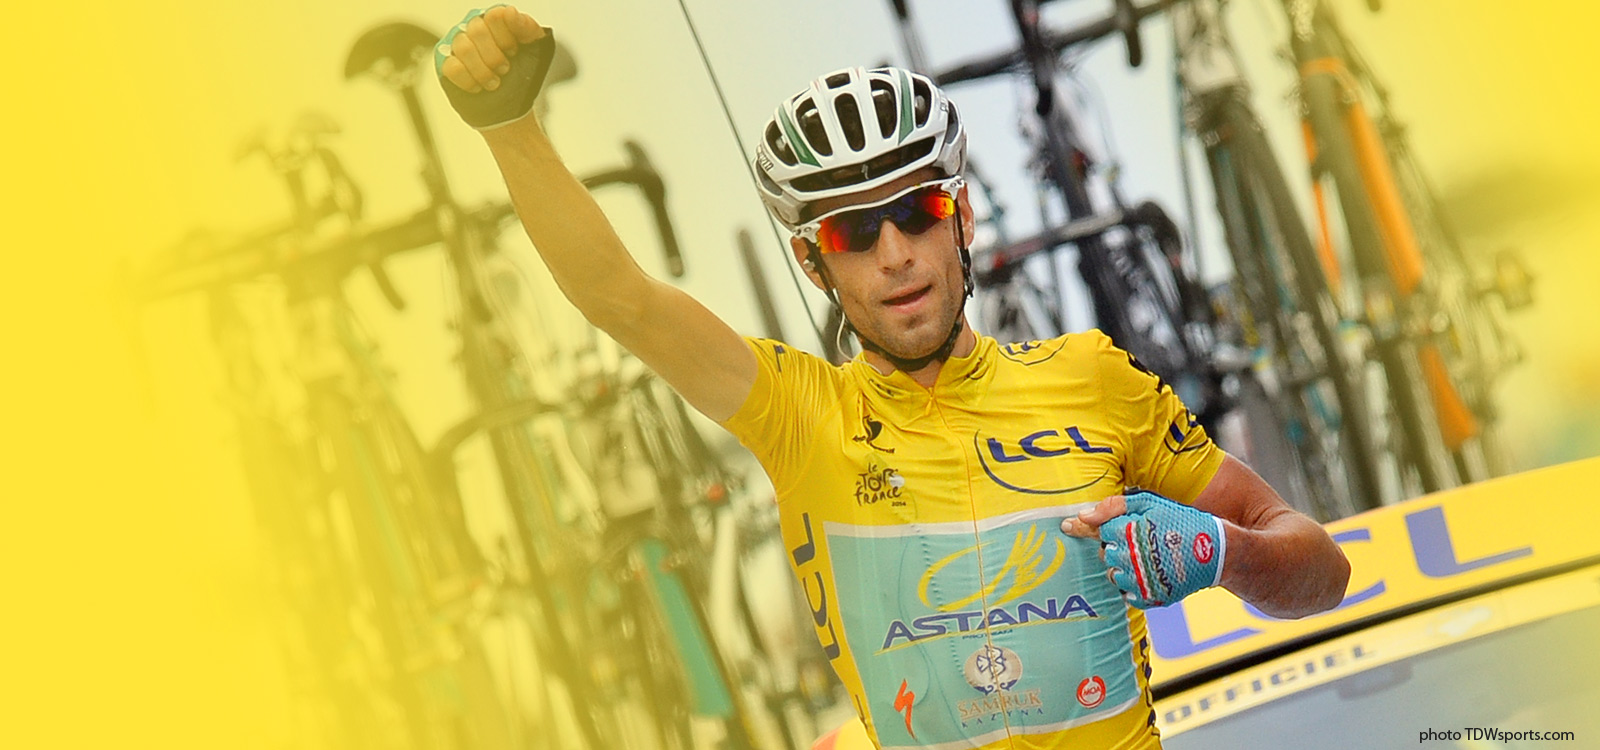 Nibali wins the second stage of the Tour de France